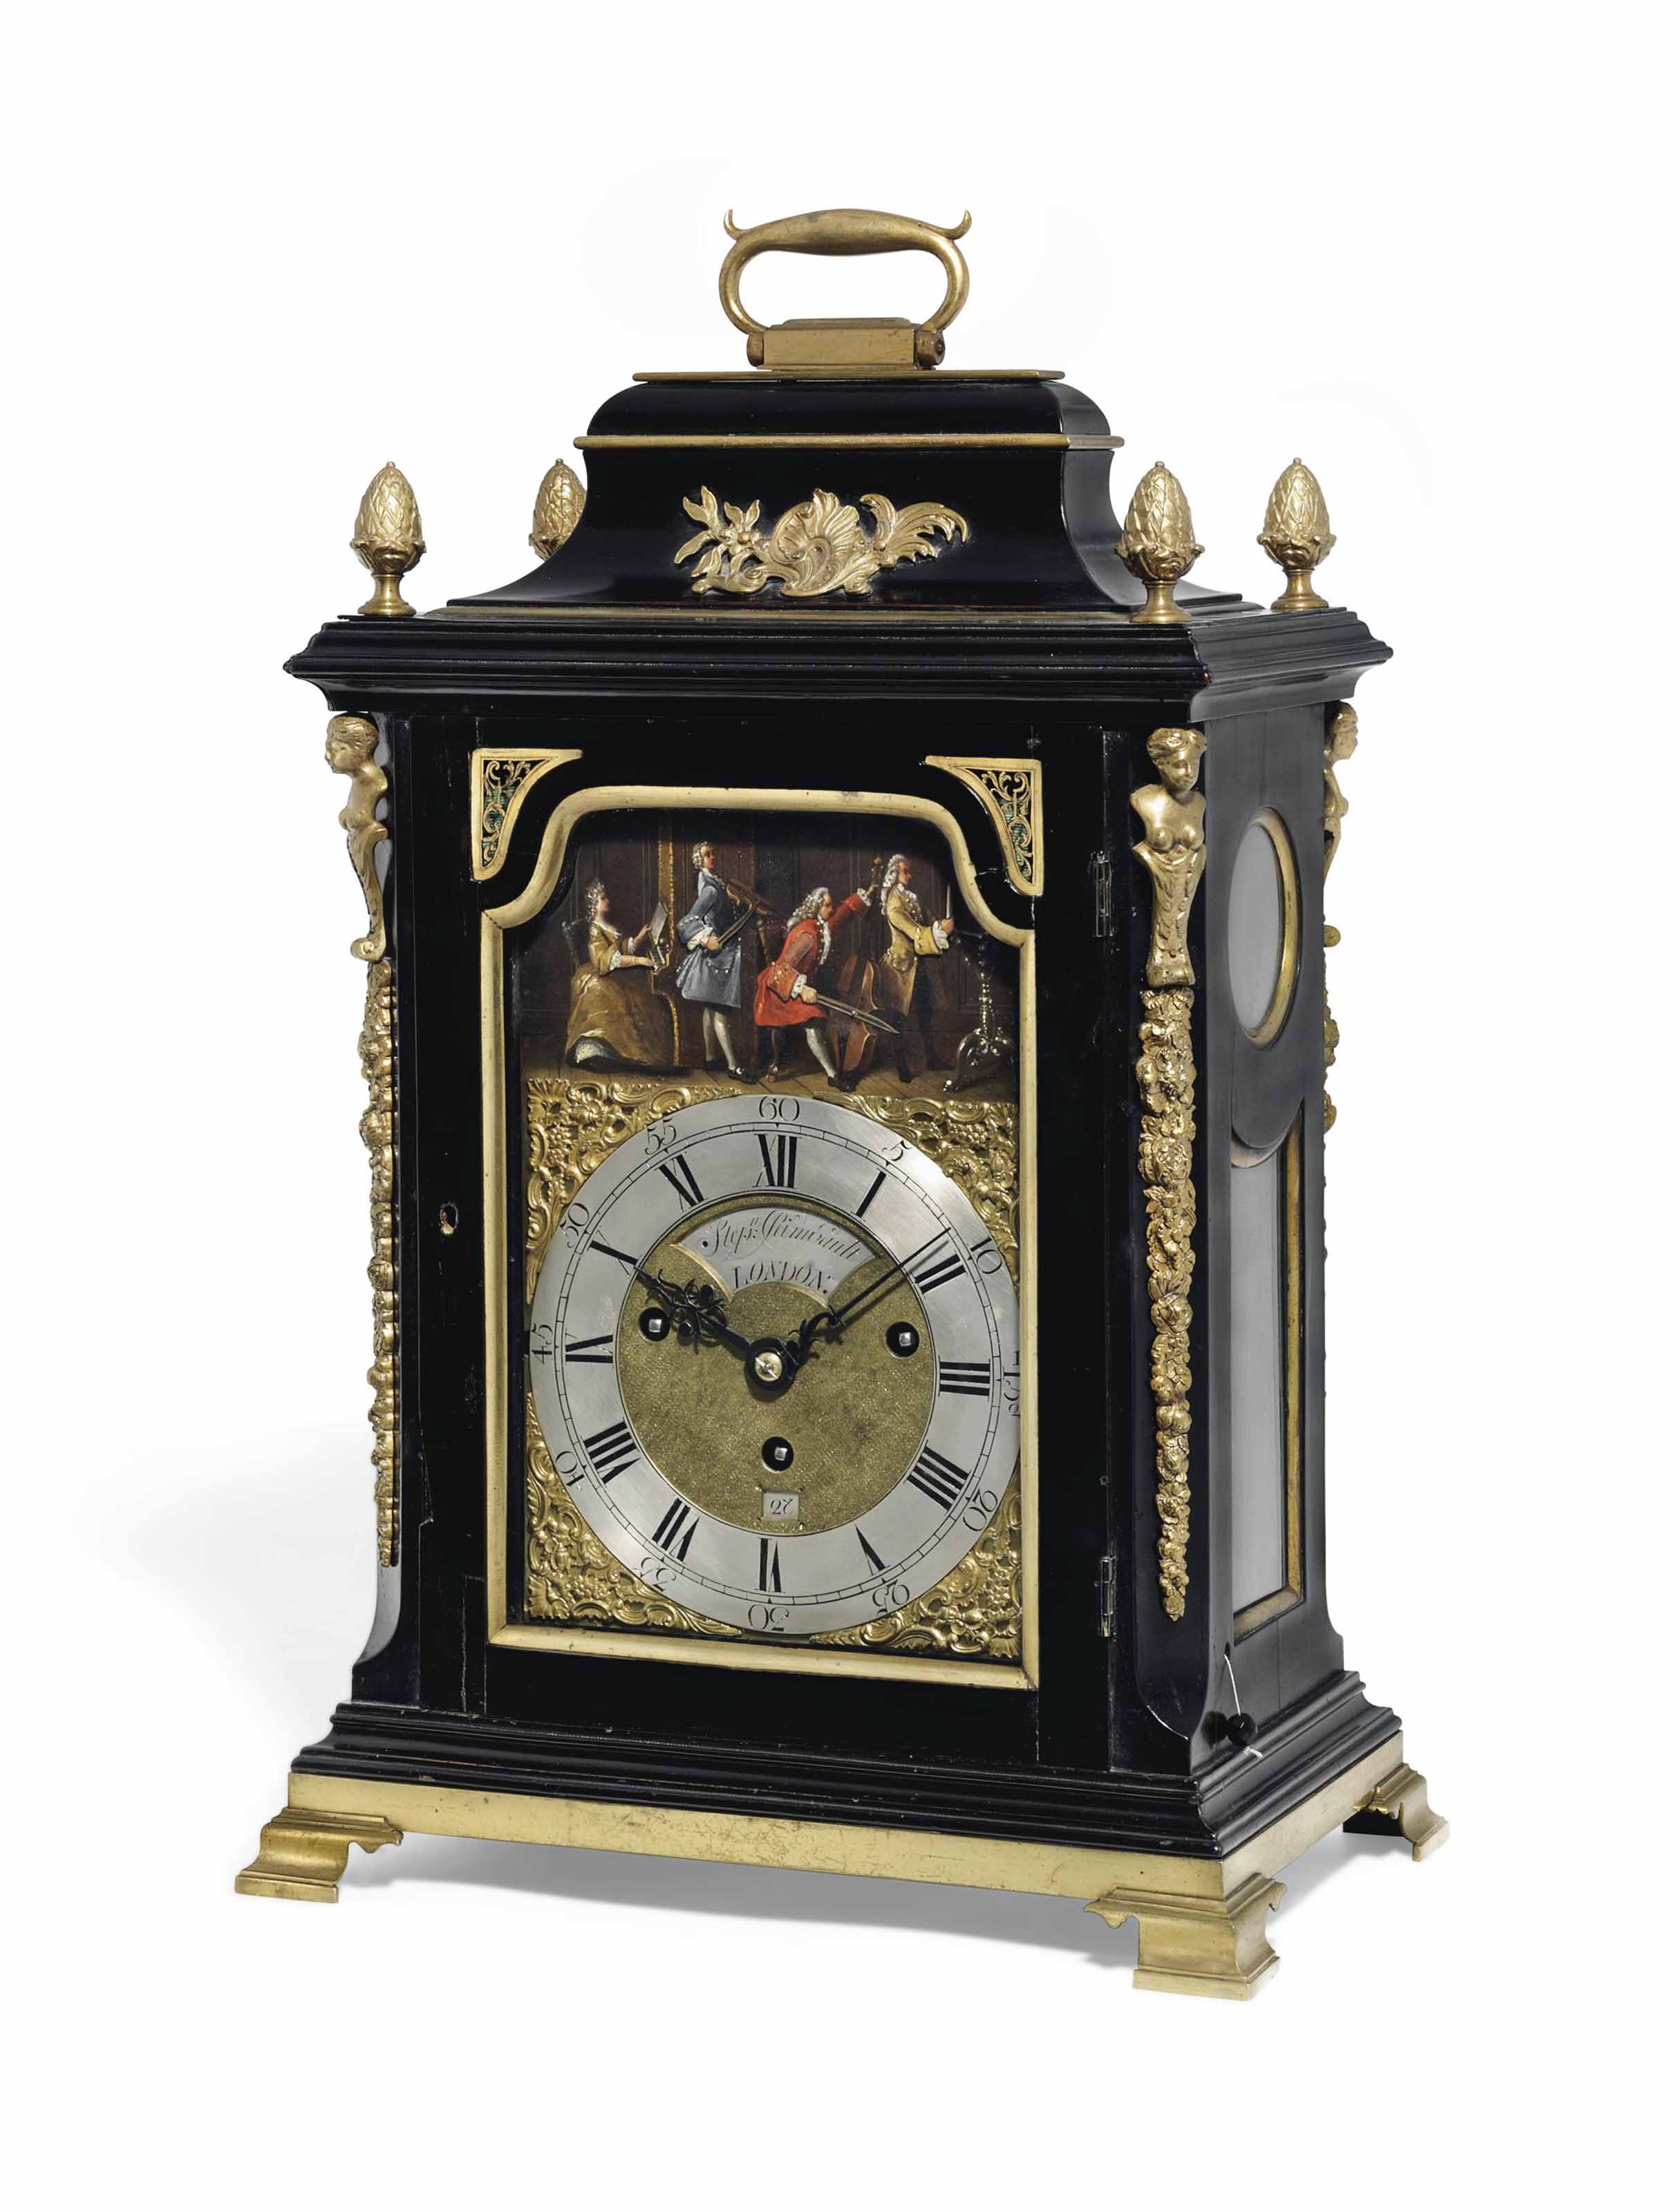 A GEORGE II GILT-BRASS MOUNTED EBONISED AUTOMATON QUARTER-CHIMING TABLE CLOCK